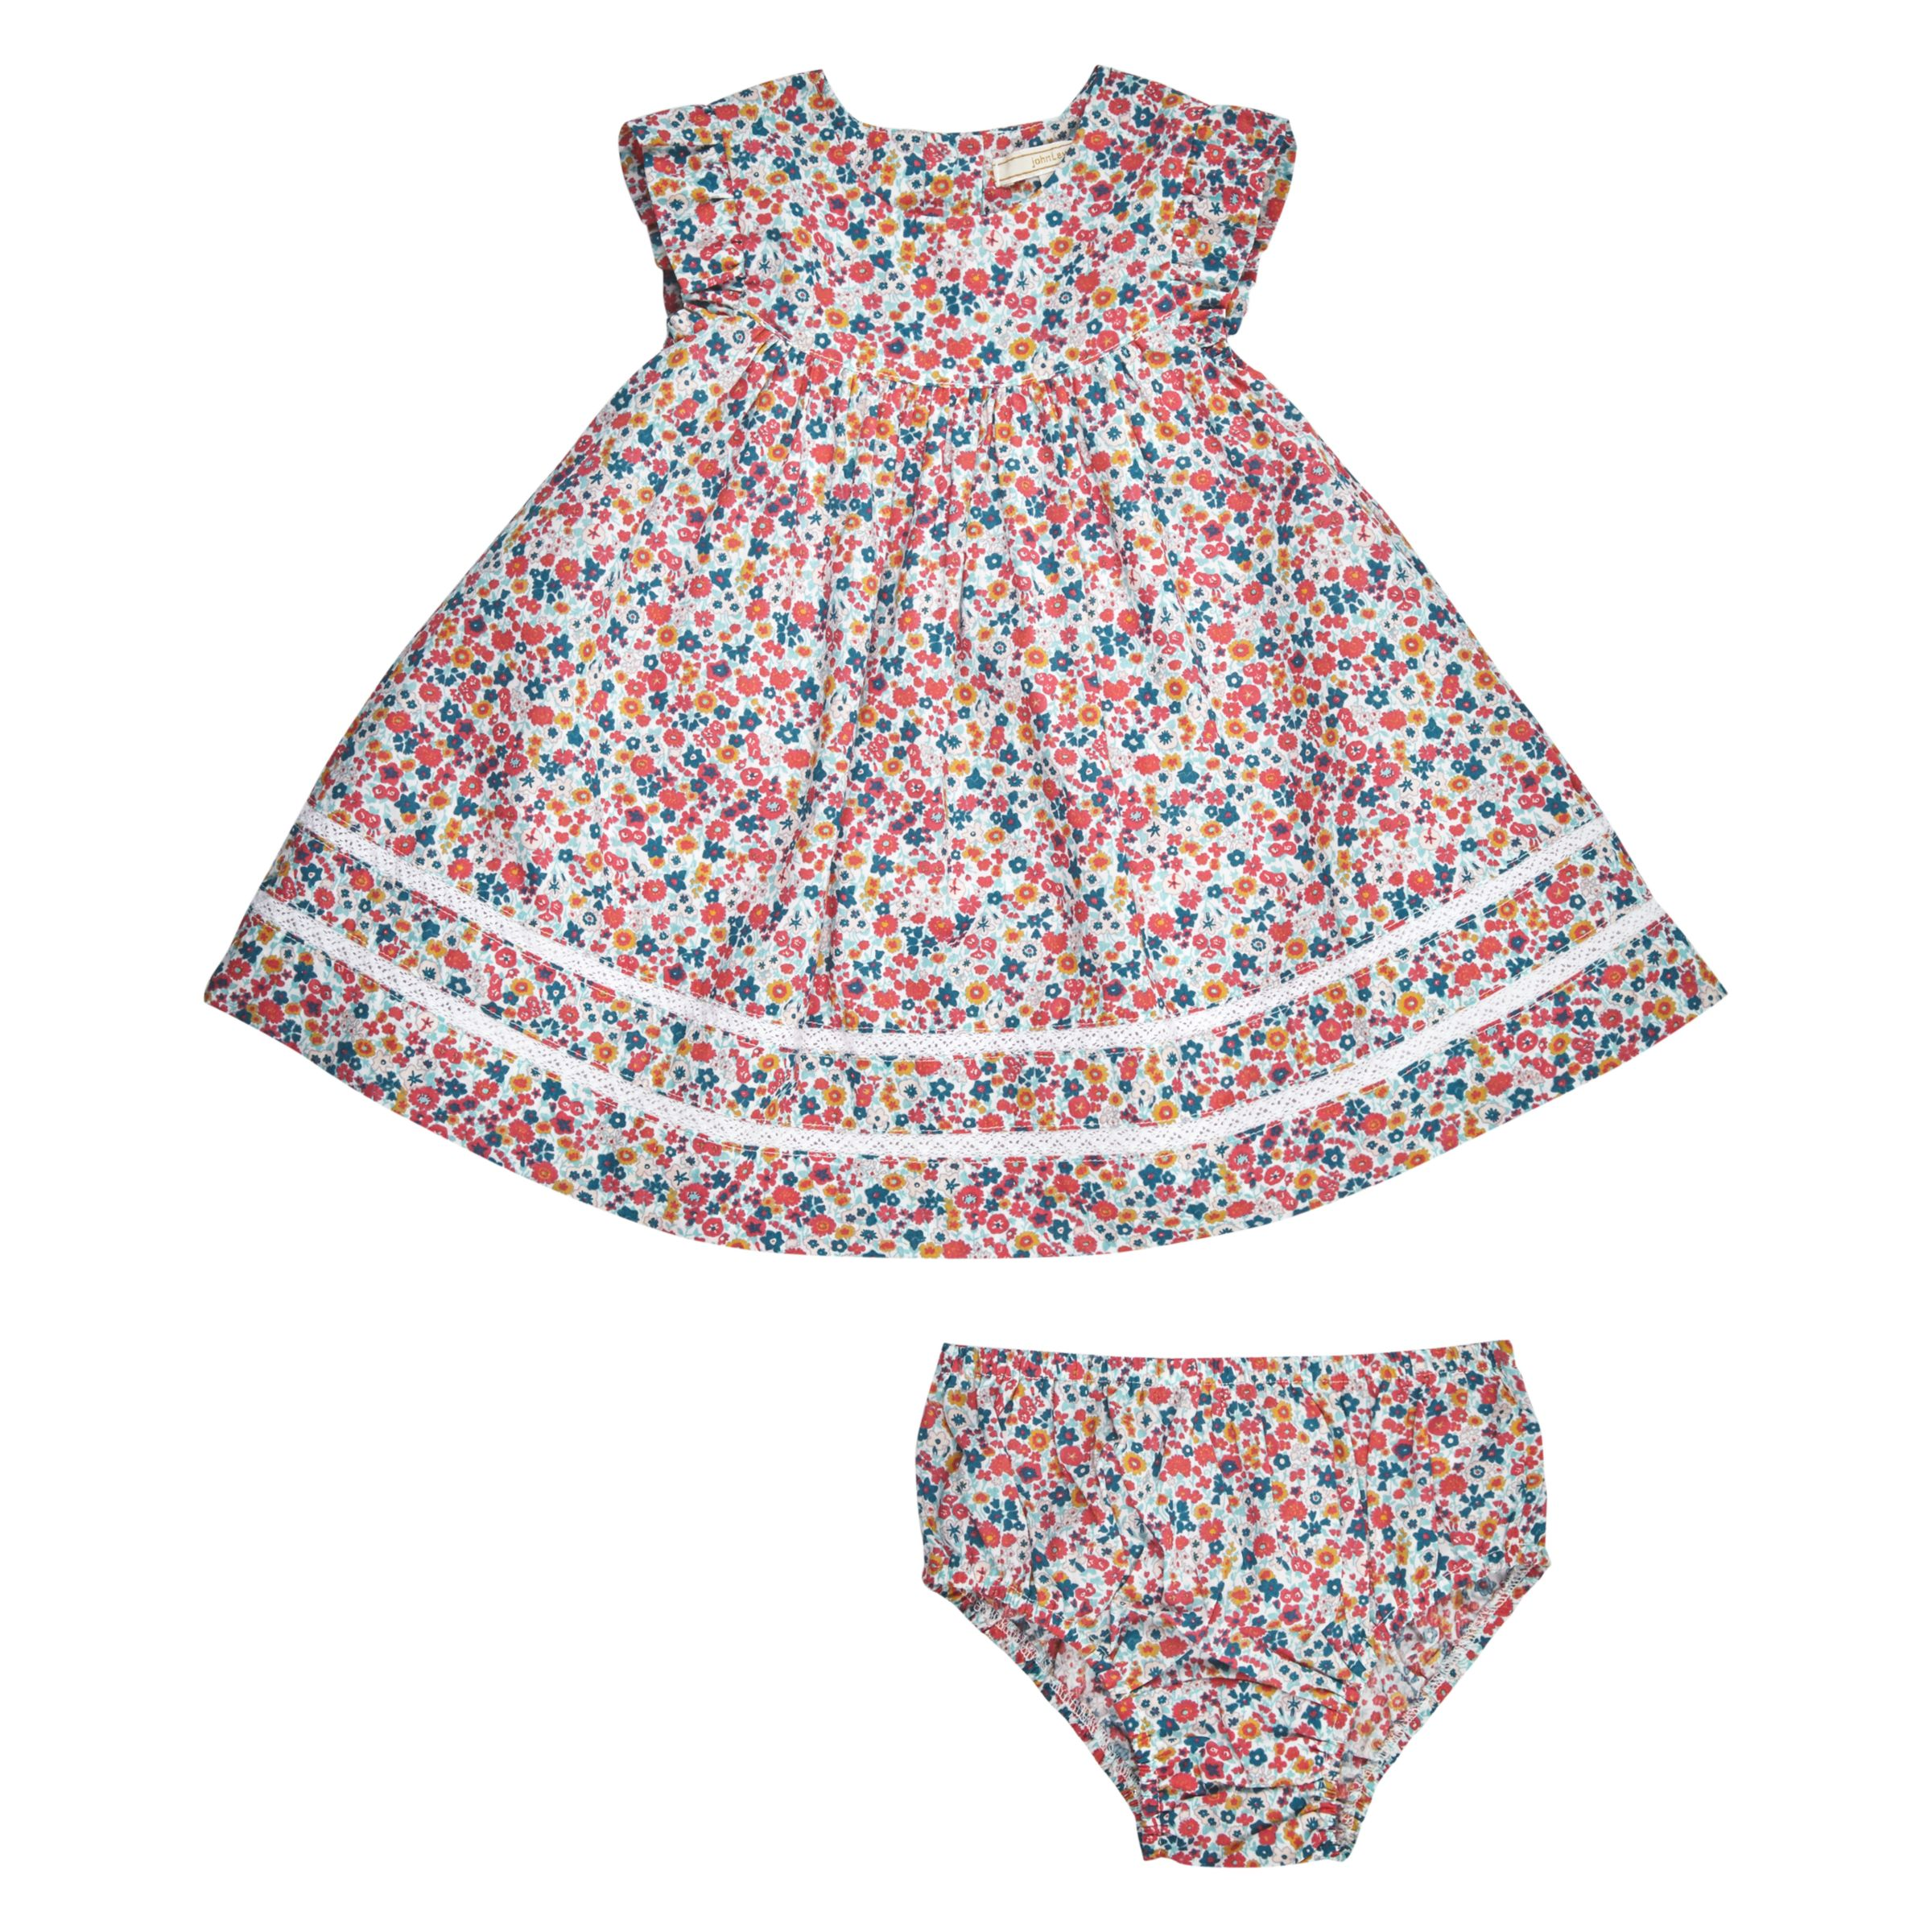 John Lewis Heirloom Collection John Lewis Heirloom Collection Baby Ditsy Dress and Knickers Set, Pink/Multi